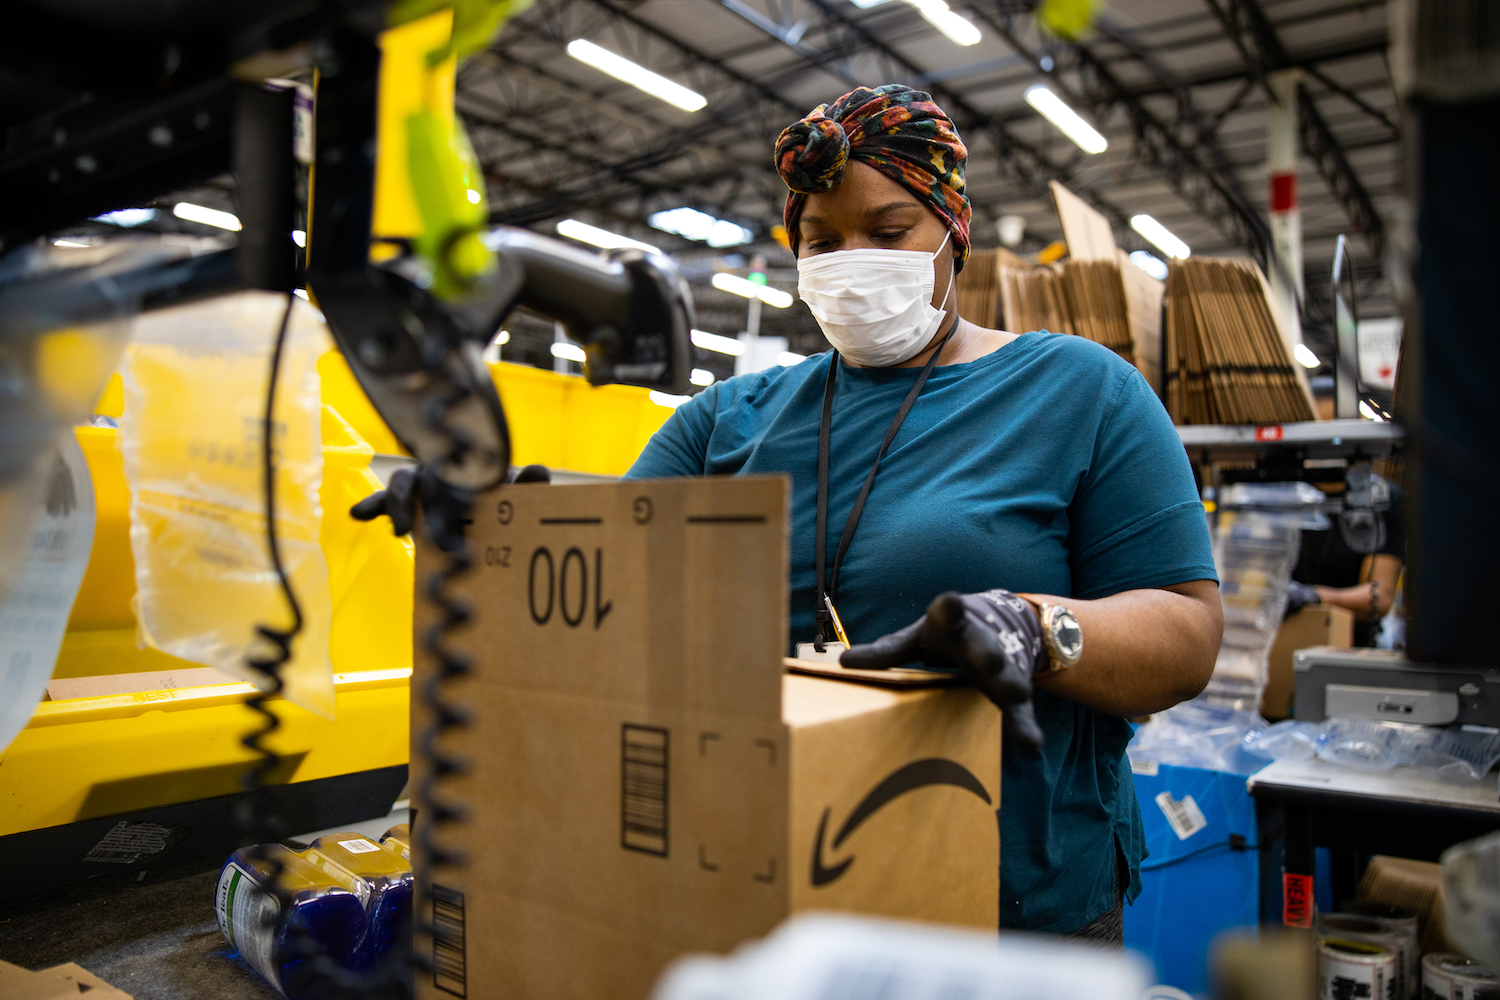 Amazon adds mental health benefit for U.S. workers with access to counseling, crisis support and more